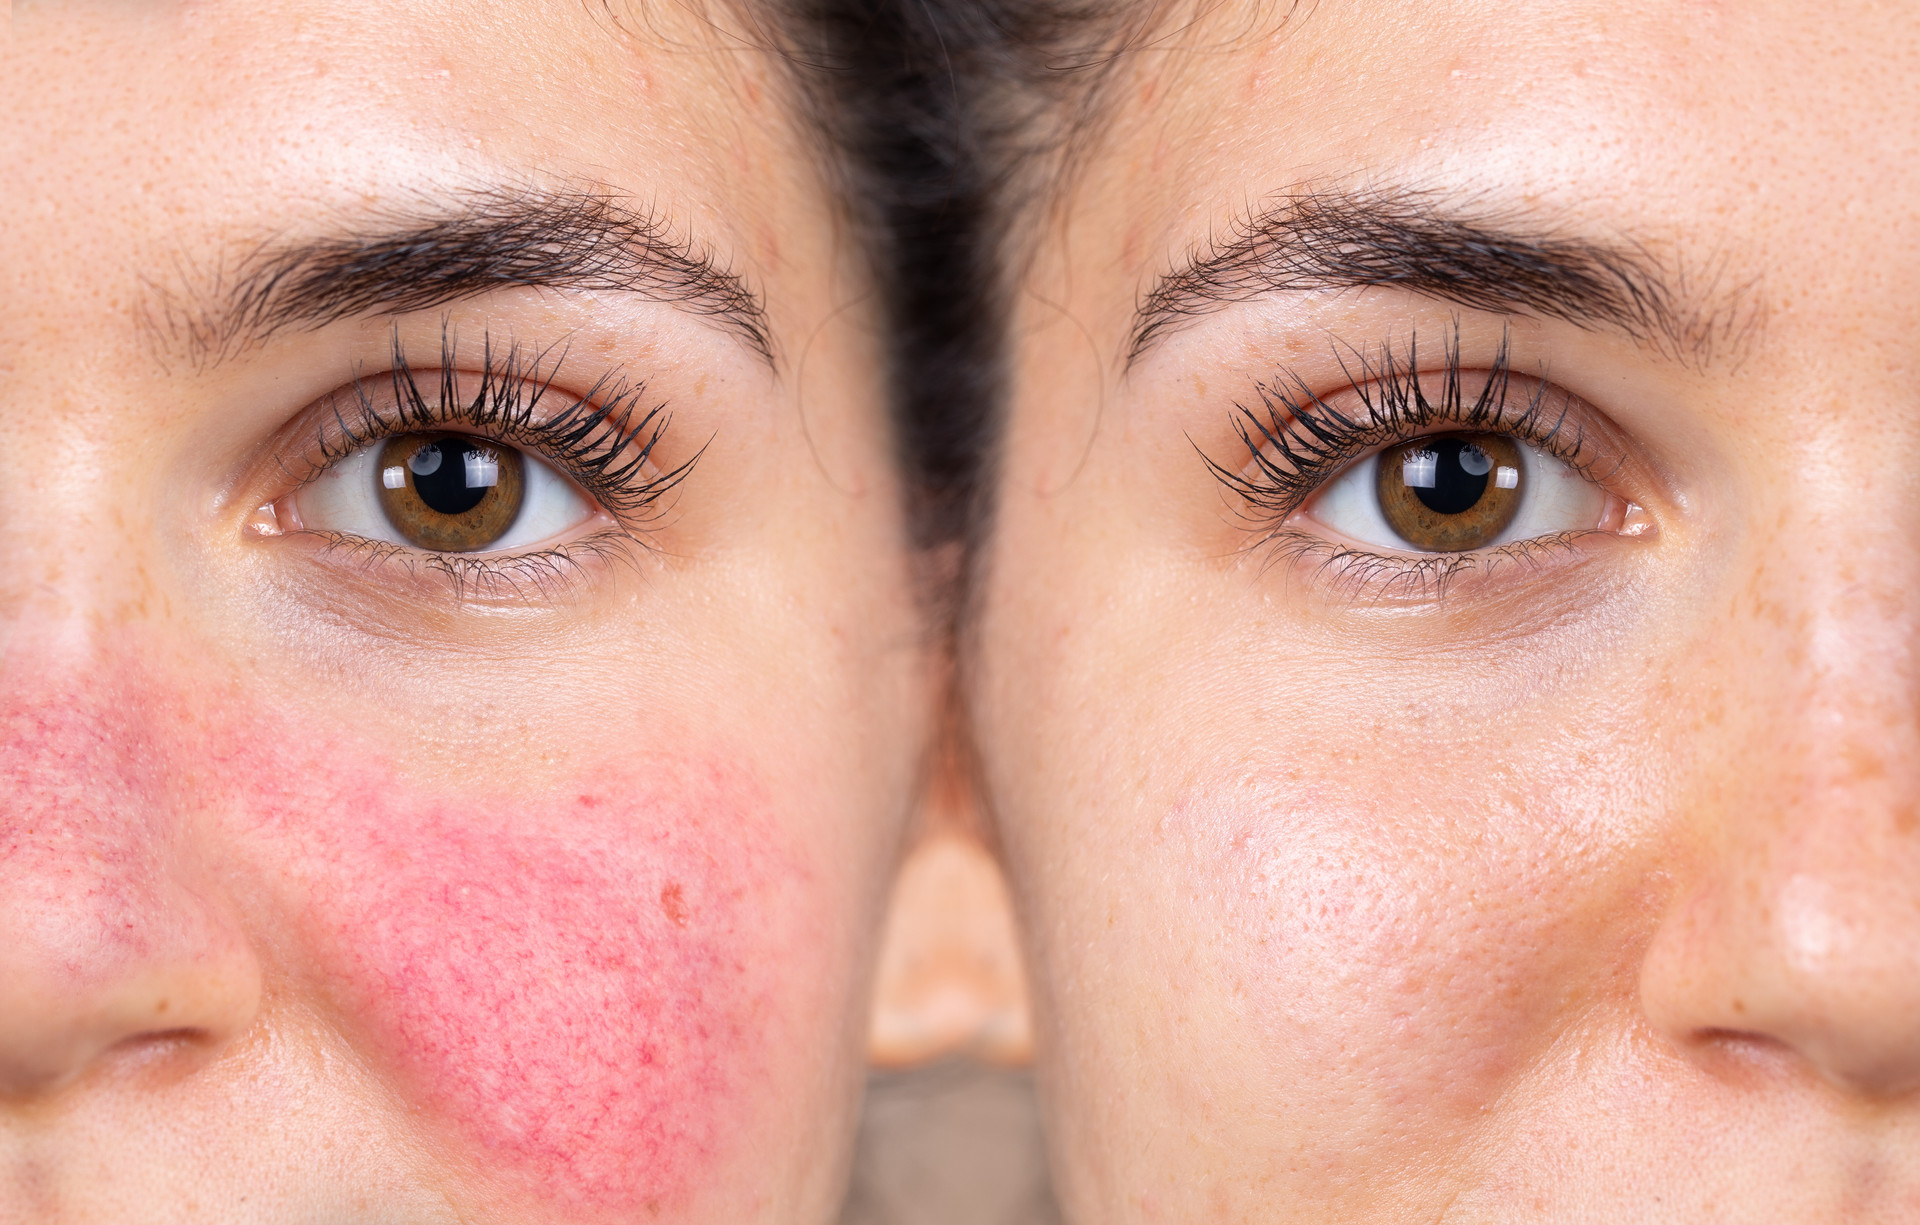 Rosacea after treatment